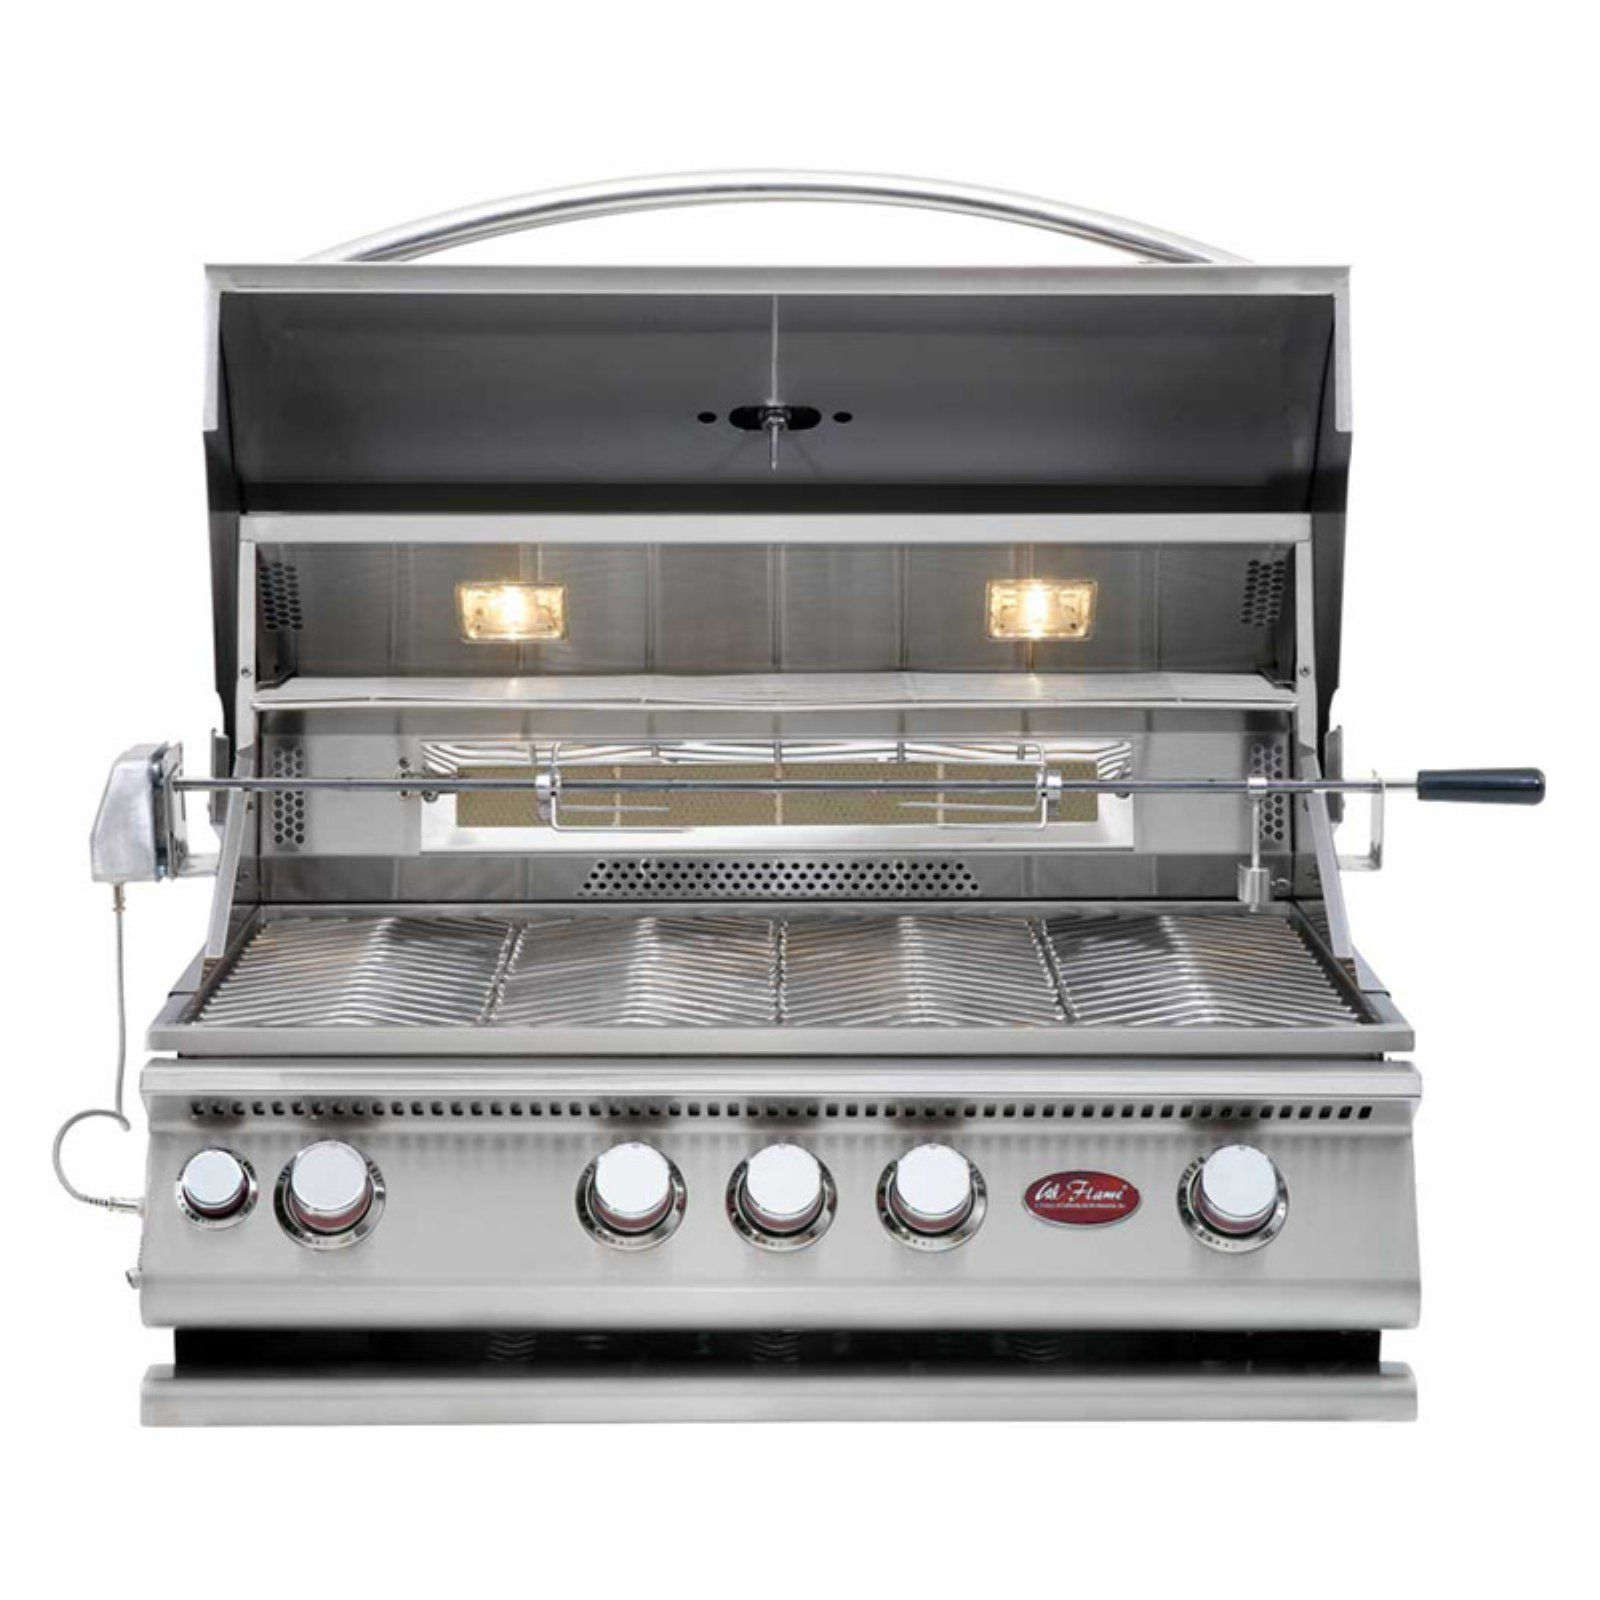 Cal Flame 4 Burner Built In Convection Grill With Rotisserie Built In Gas Grills Cal Flame Built In Grill